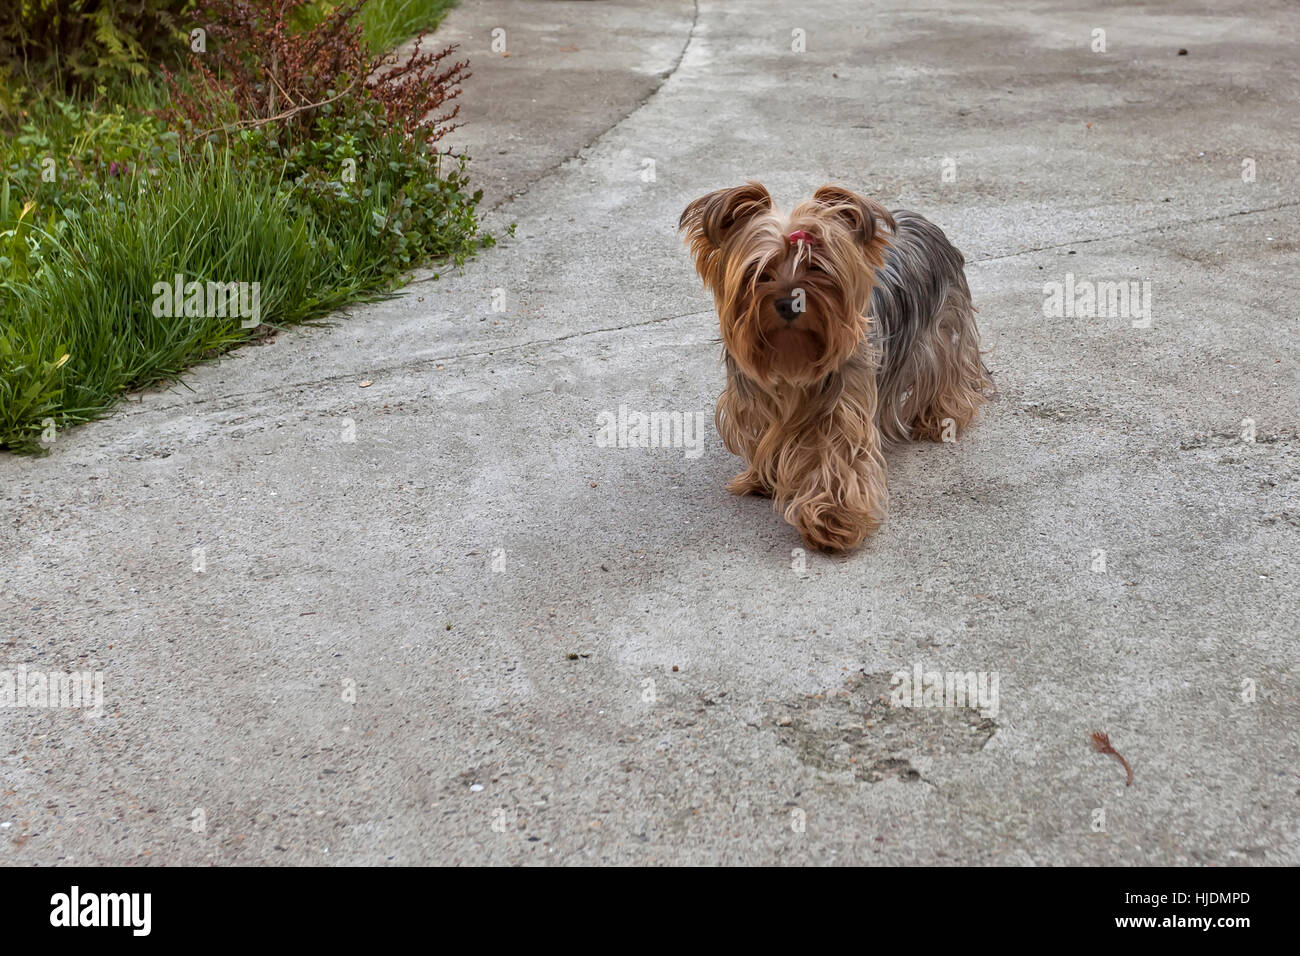 A little fluffy dog in the backyard - Stock Image